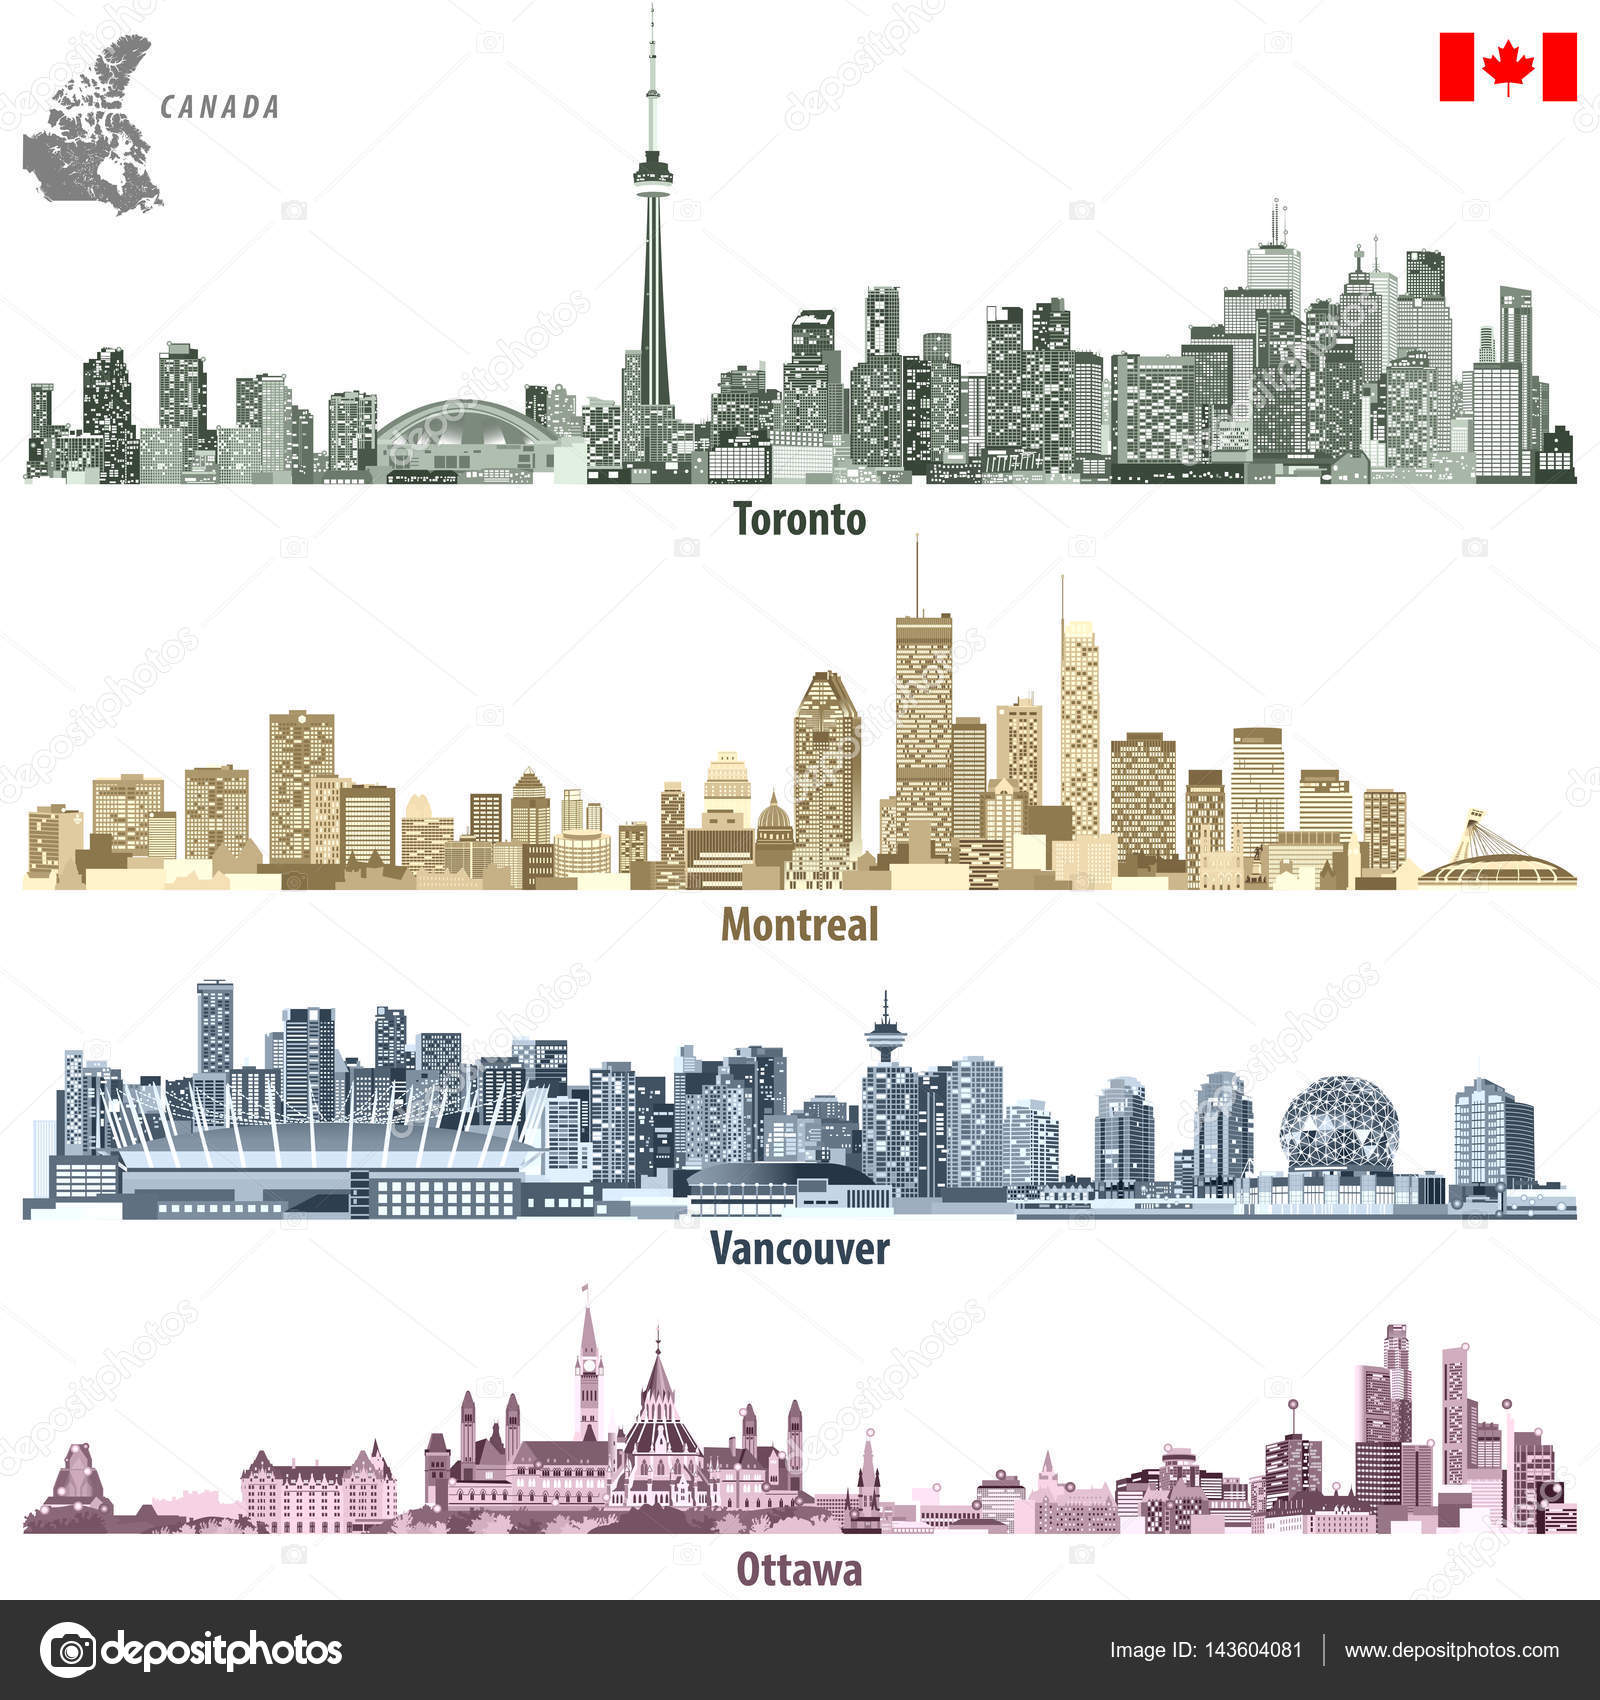 Map Of Canada Vancouver Toronto.Vector Illustrations Of Canadian Cities Toronto Montreal Vancouver